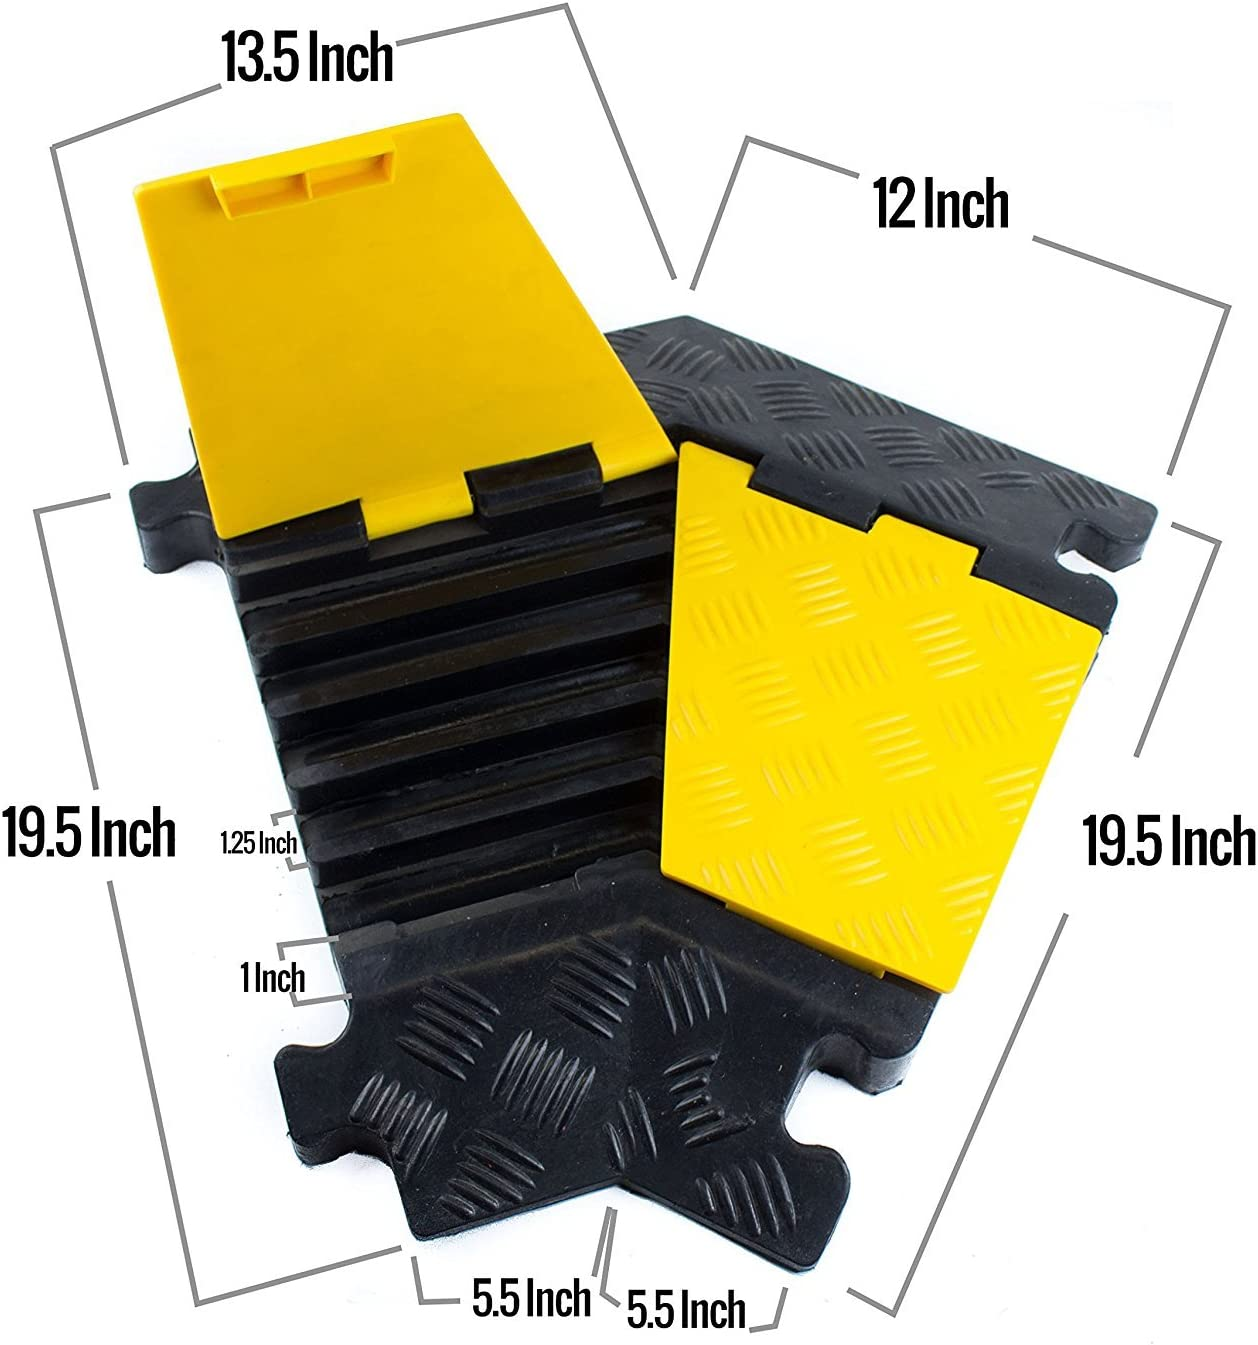 1 Piece, 3-Channel Troy Safety Rubber Cable Protectors Rubber Speed Bump